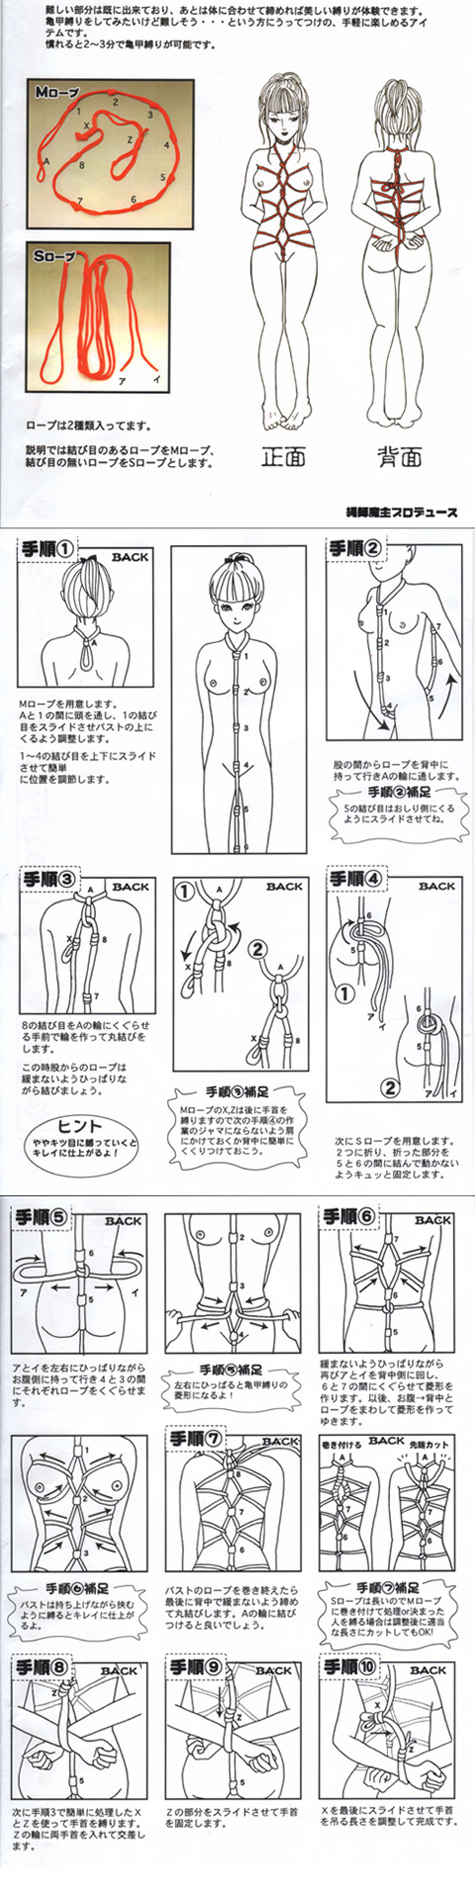 akali crimson how to get Wii fit trainer rule 63